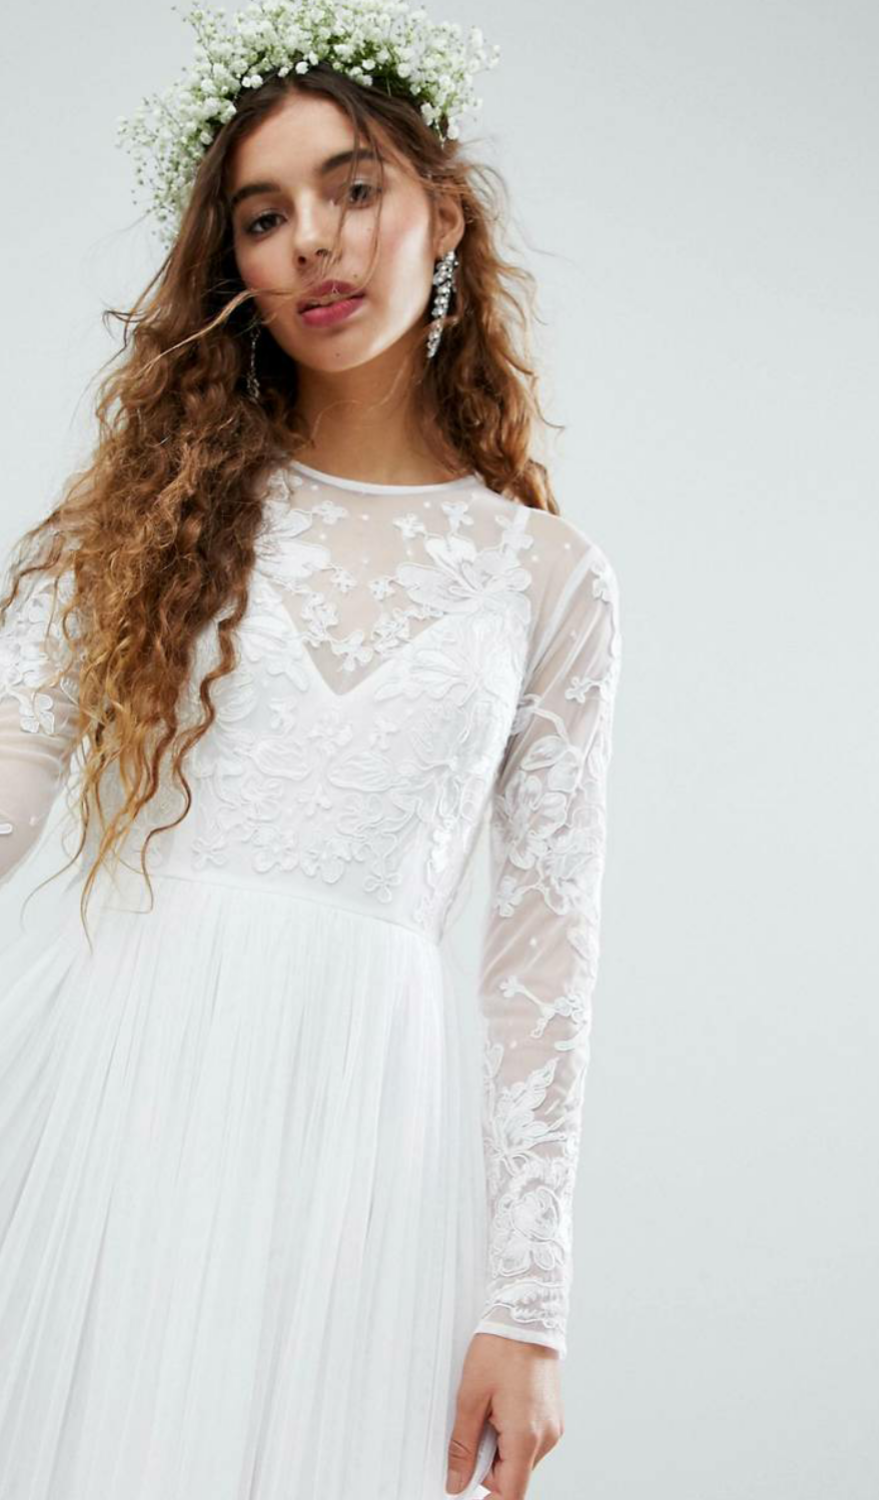 Wedding dress for under £200